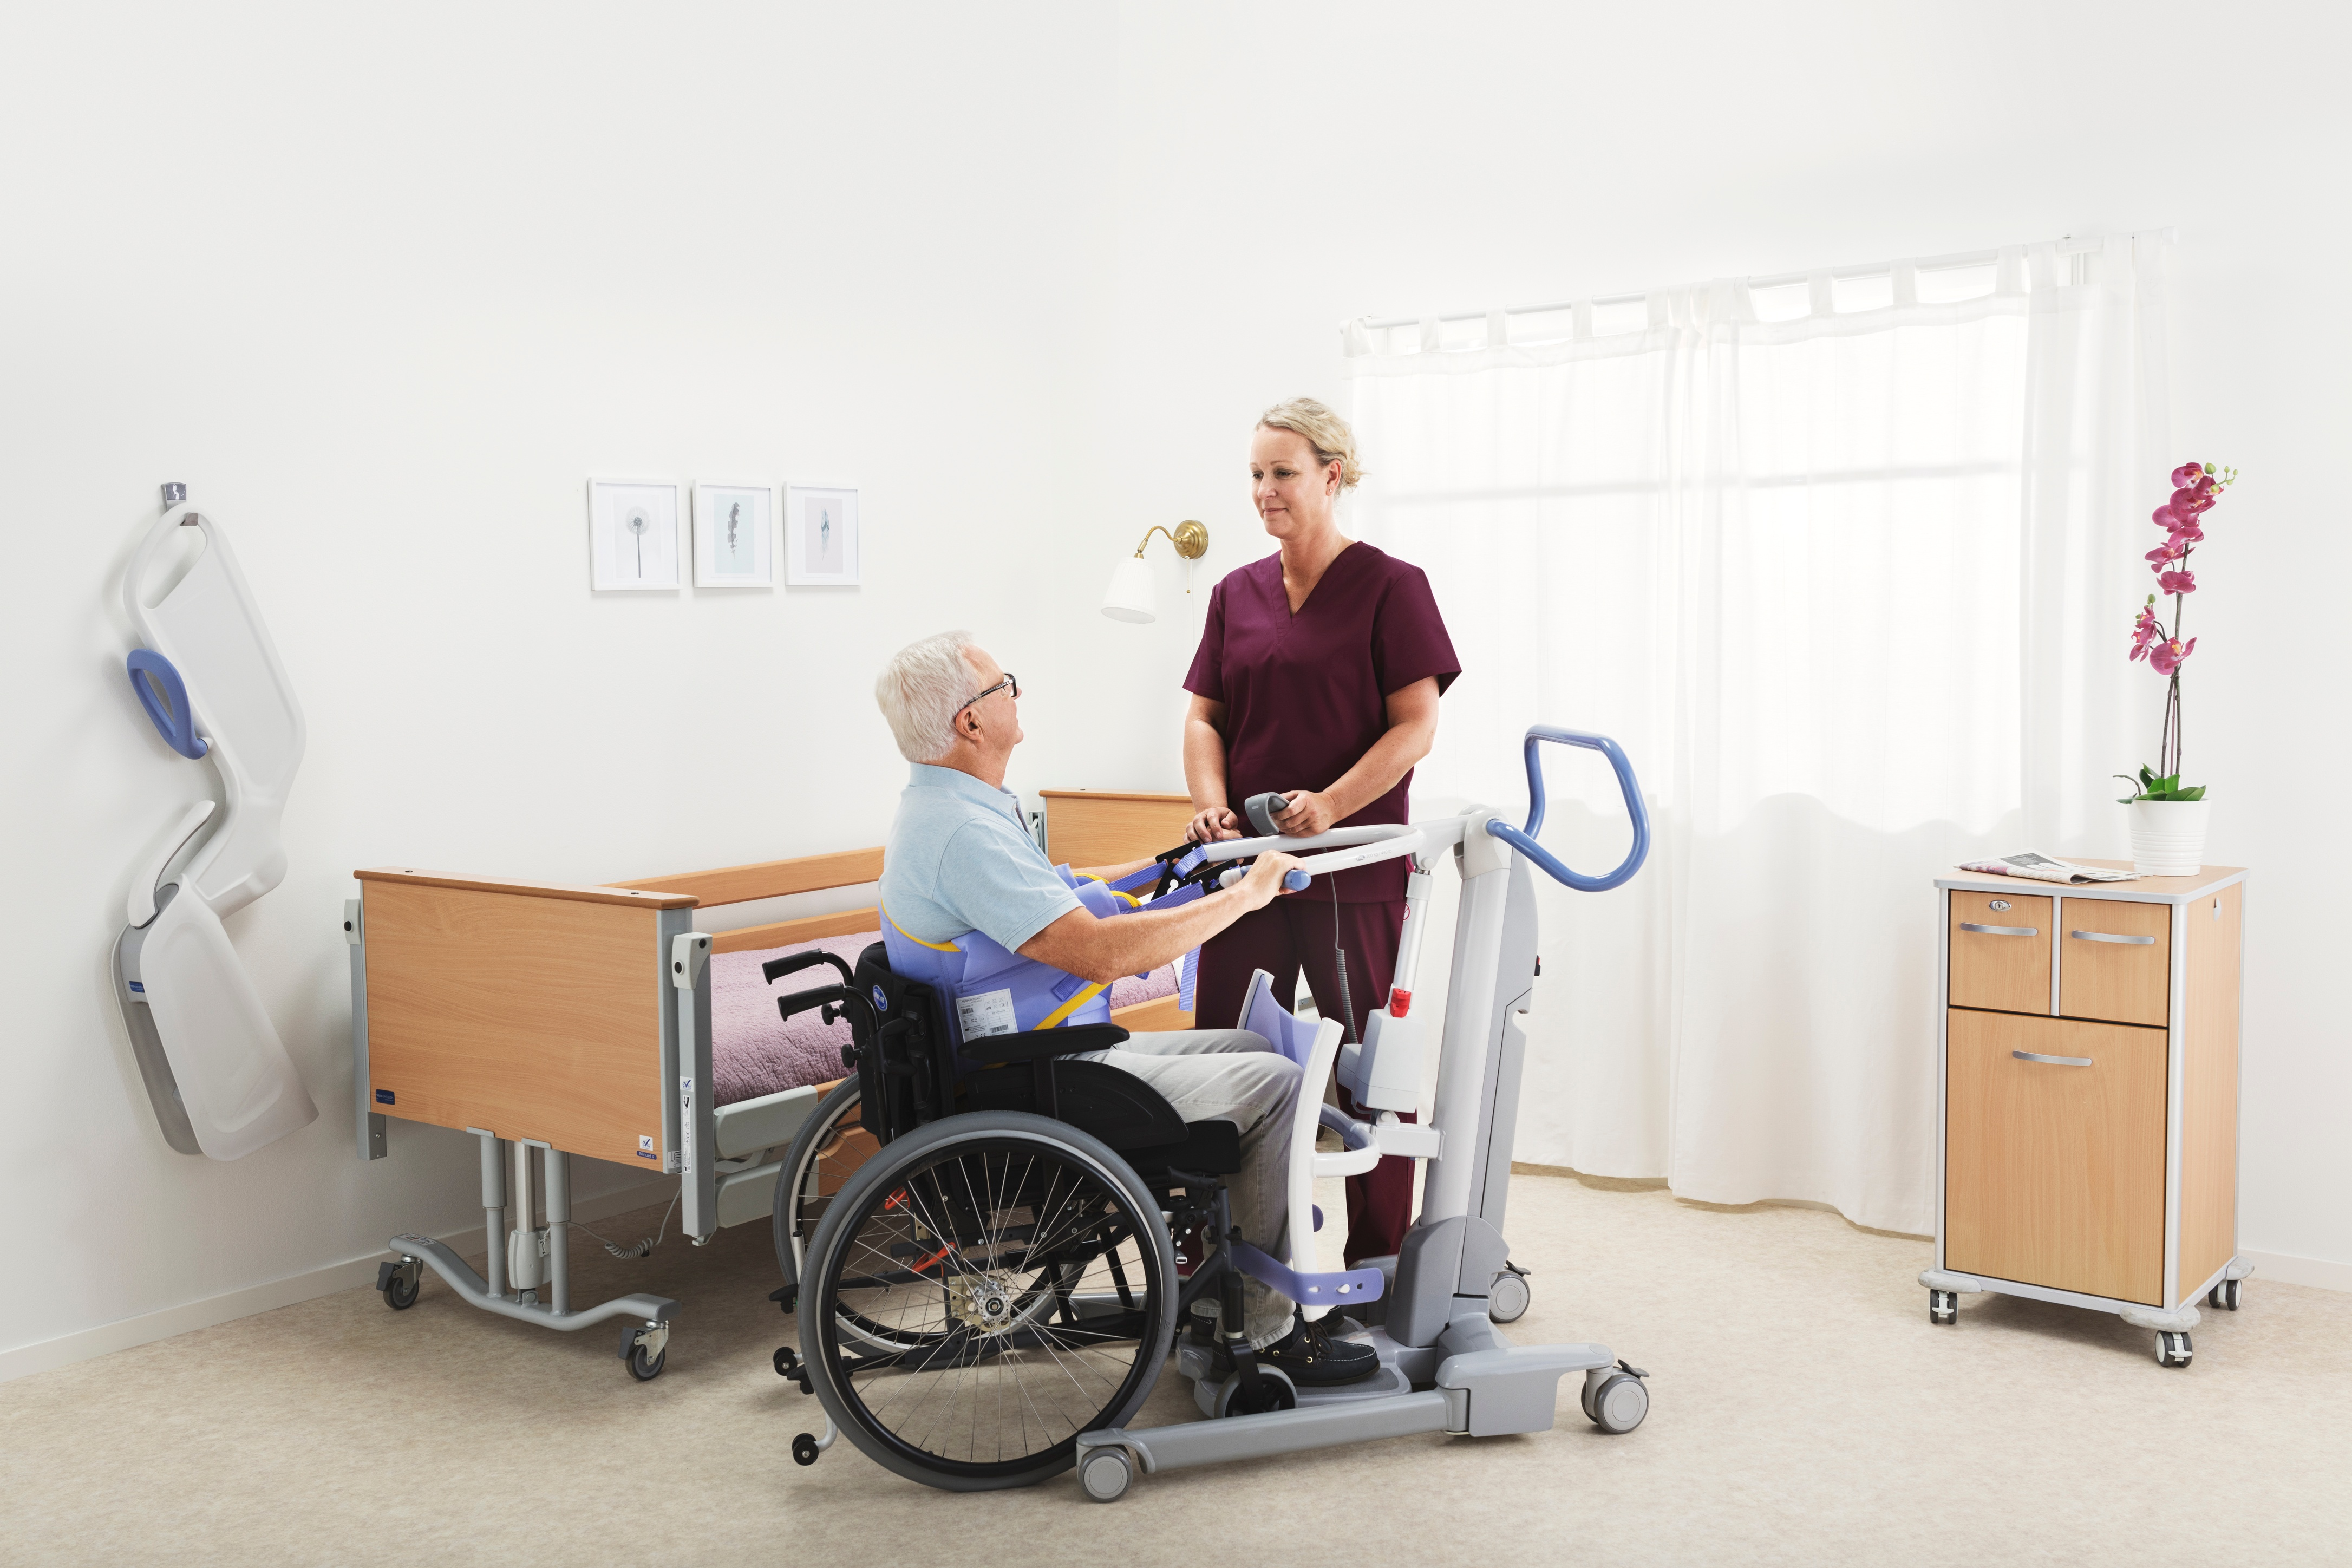 How many sit-to-stand transfers do caregivers perform with their patients per day?